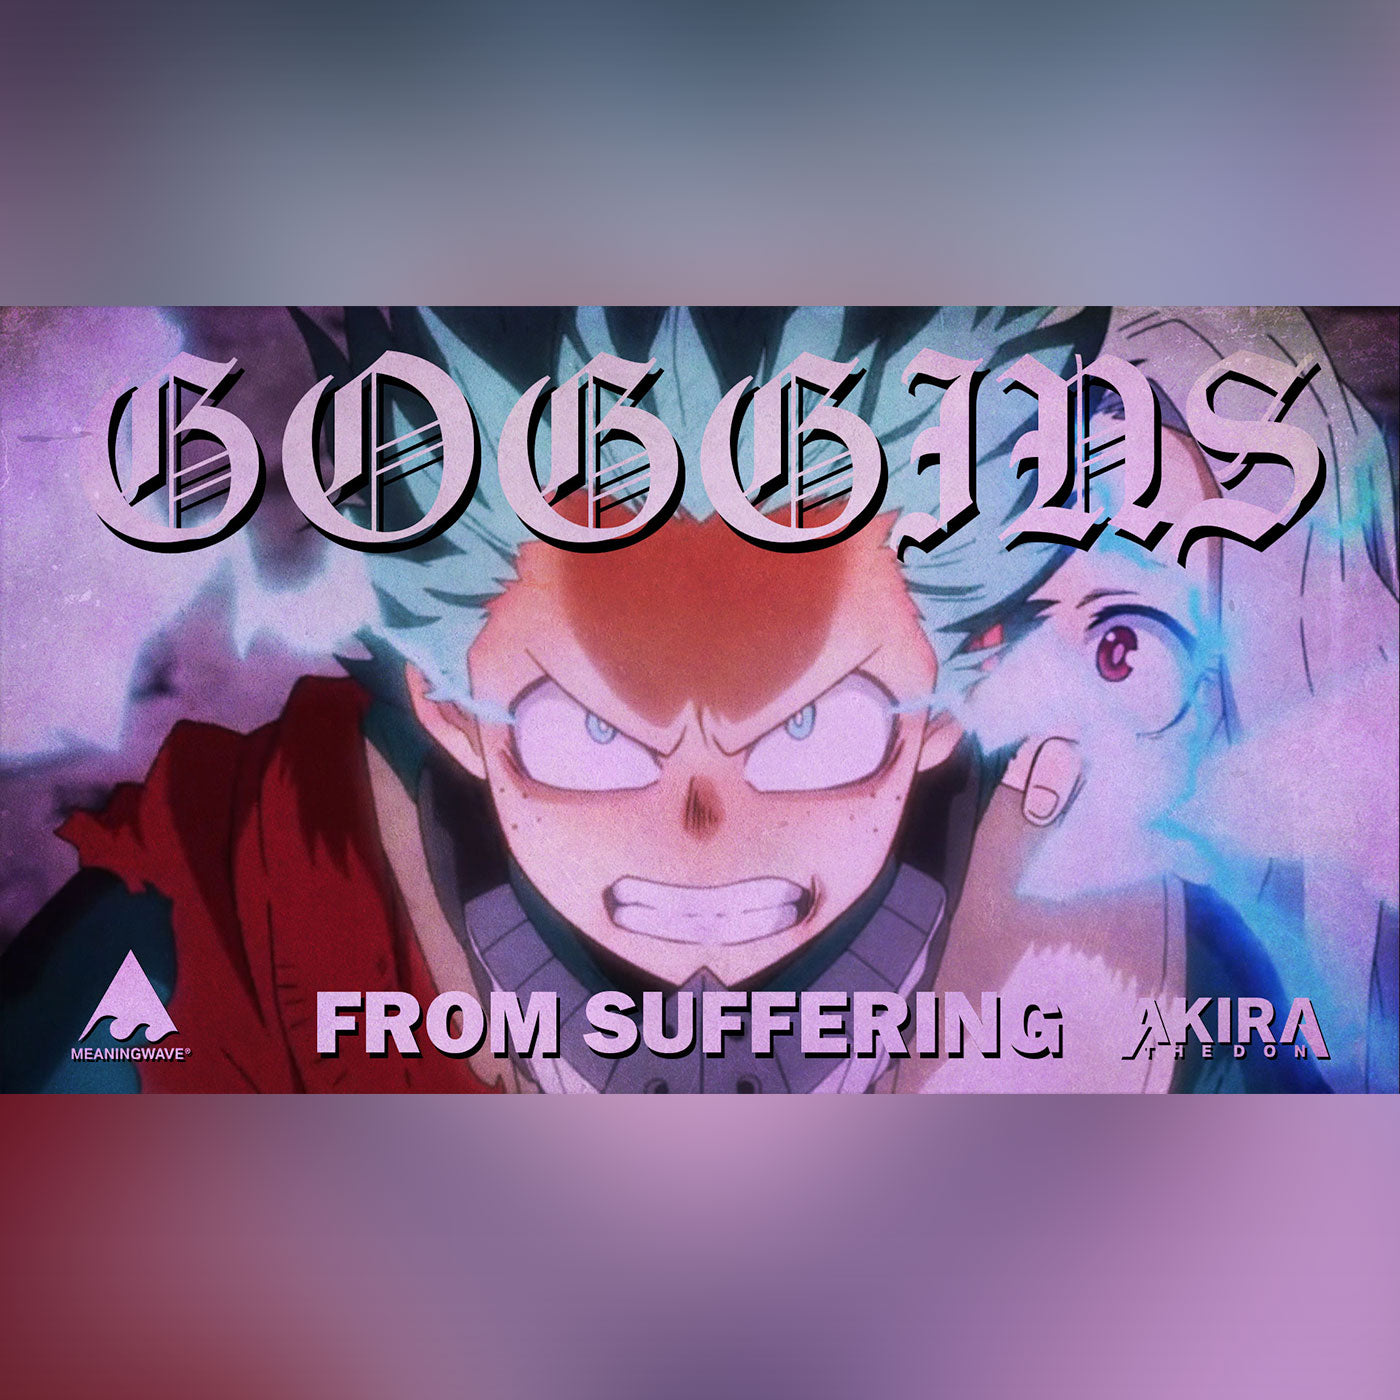 Akira The Don & David Goggins - FROM SUFFERING | Meaningwave | AMV